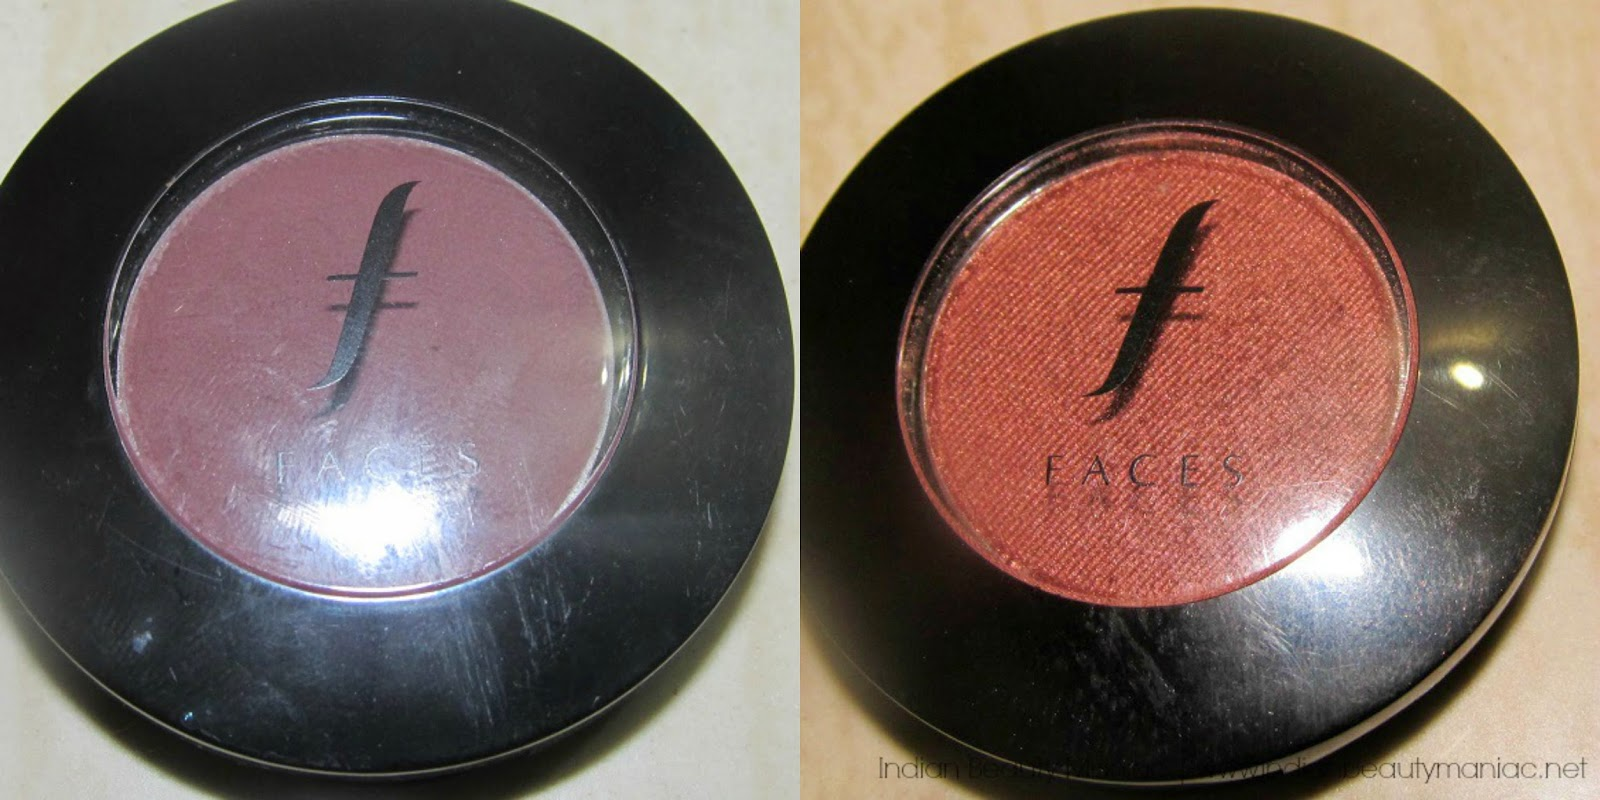 Faces Canada Eyeshadow Singles FES232 and FES066